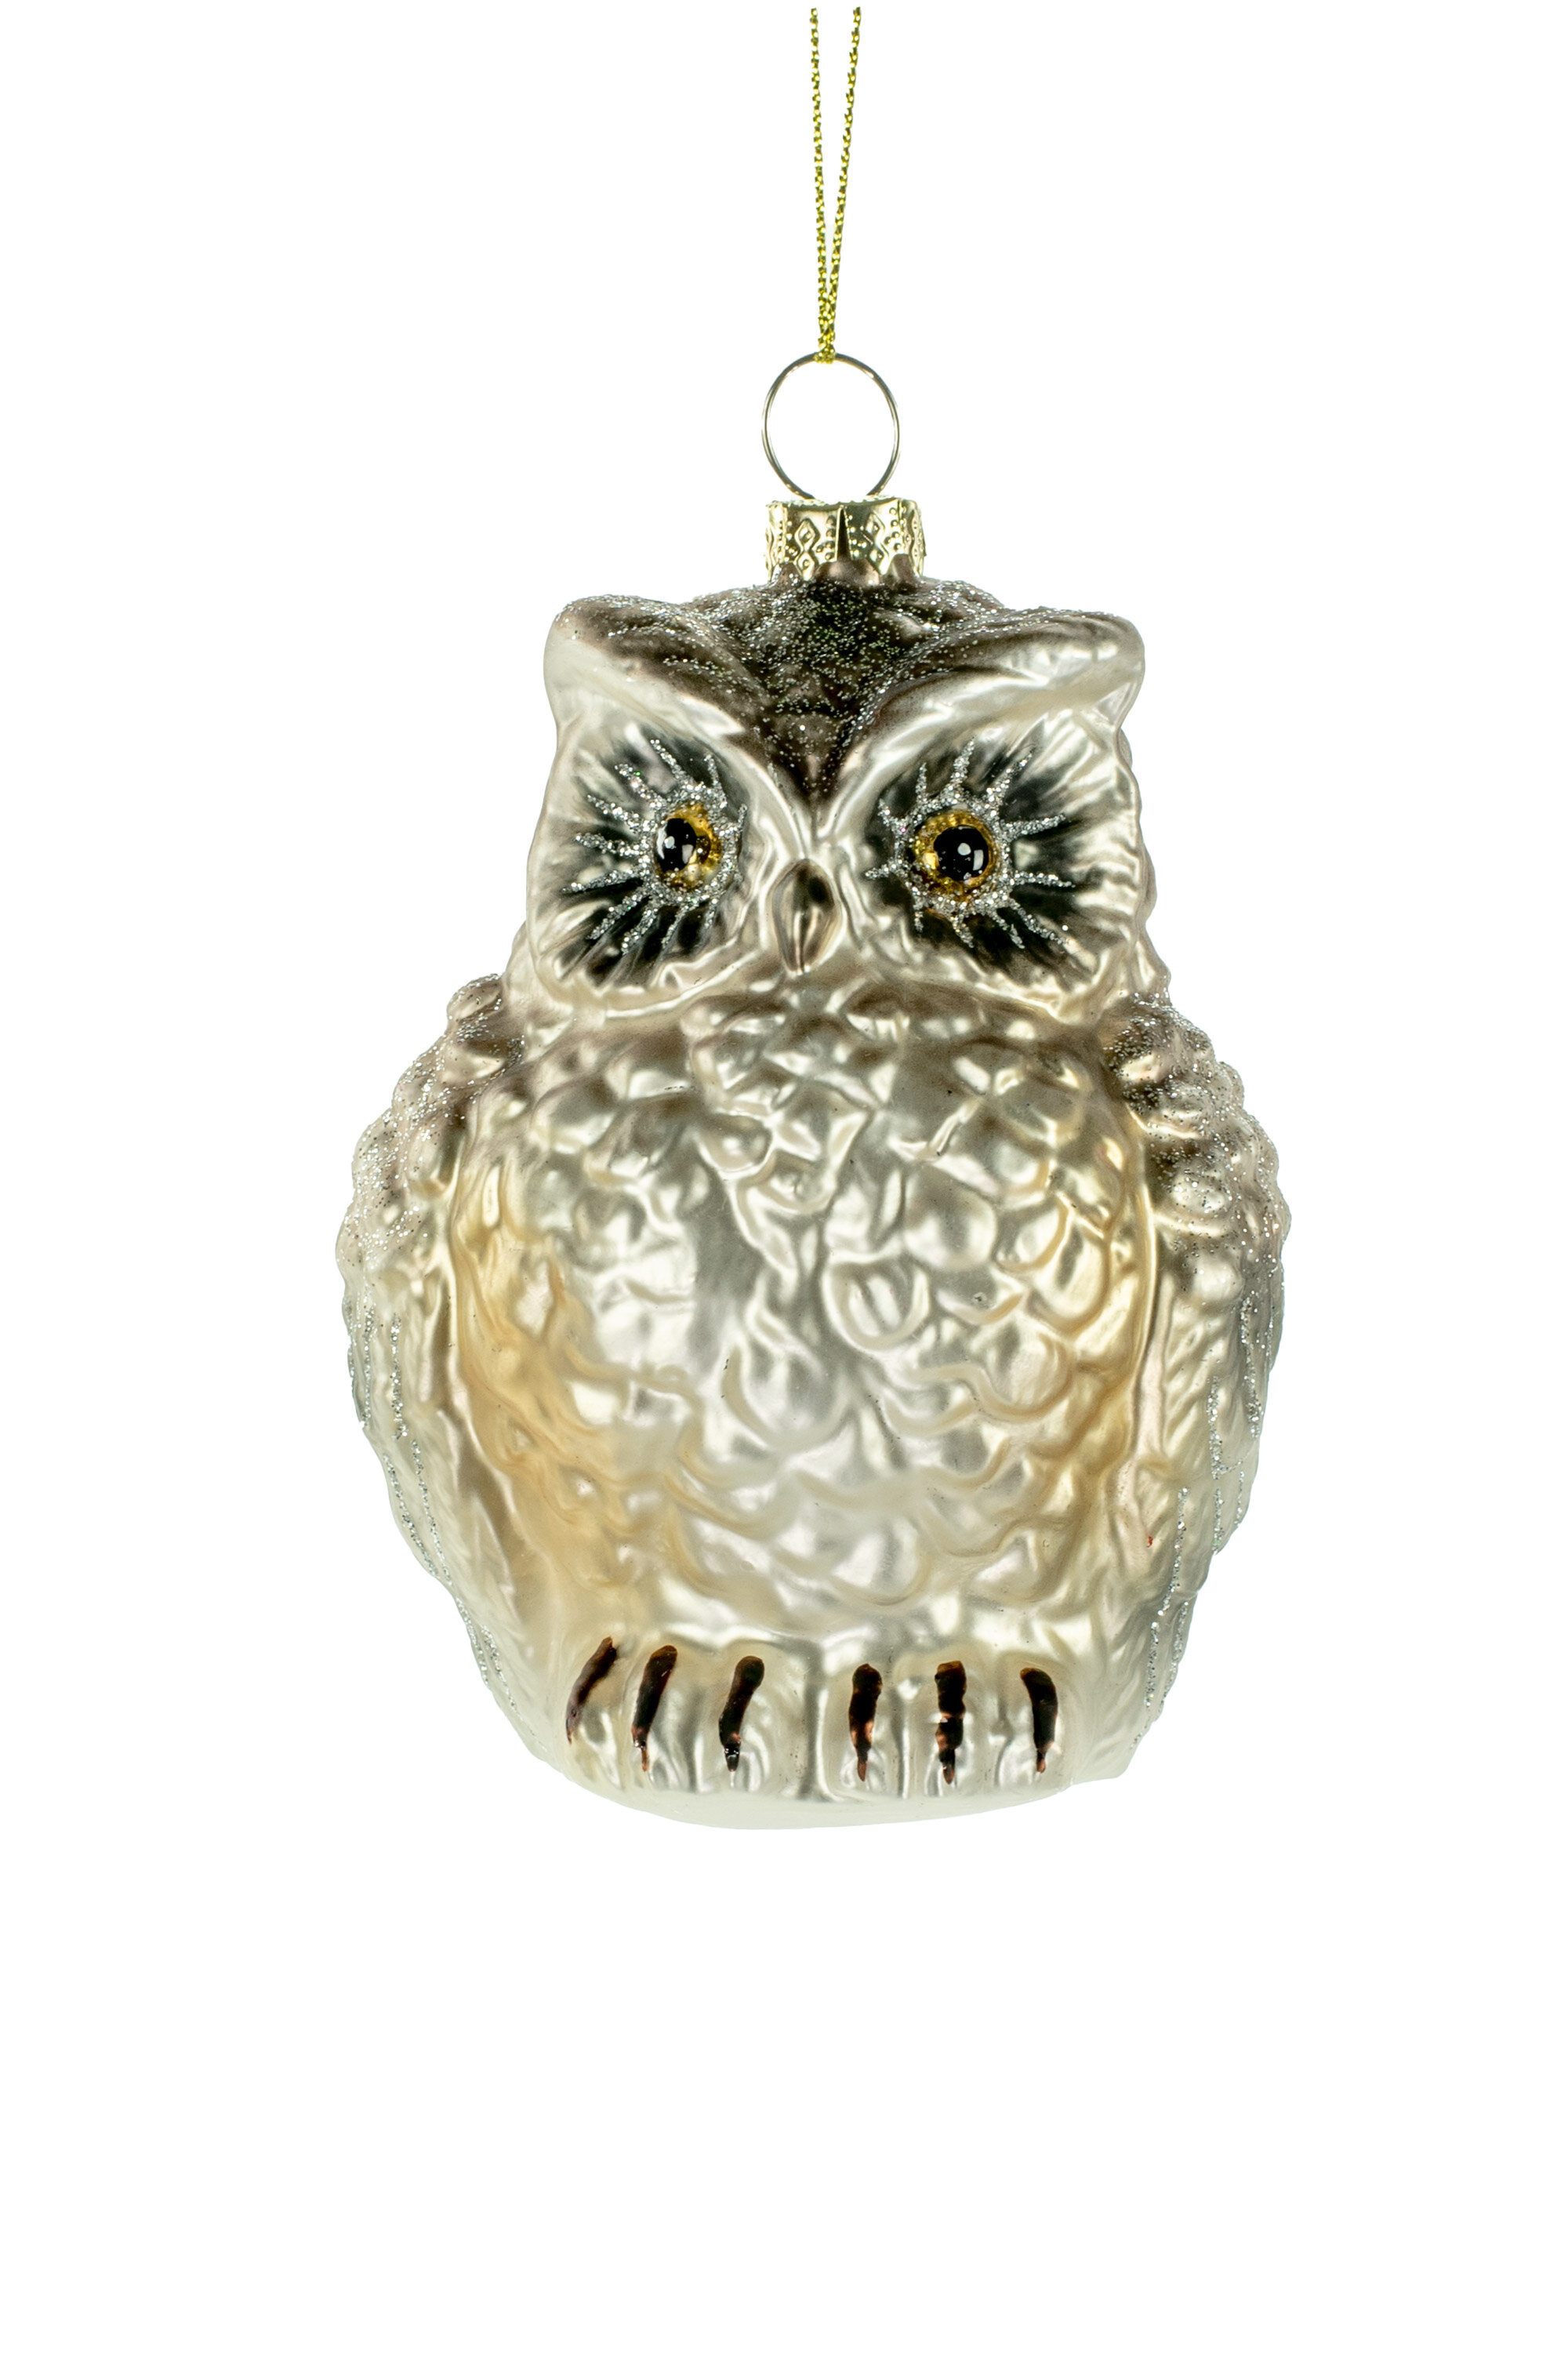 Jj S Holiday Gifts Ltd Owl Hanging Figurine Ornament Wayfair